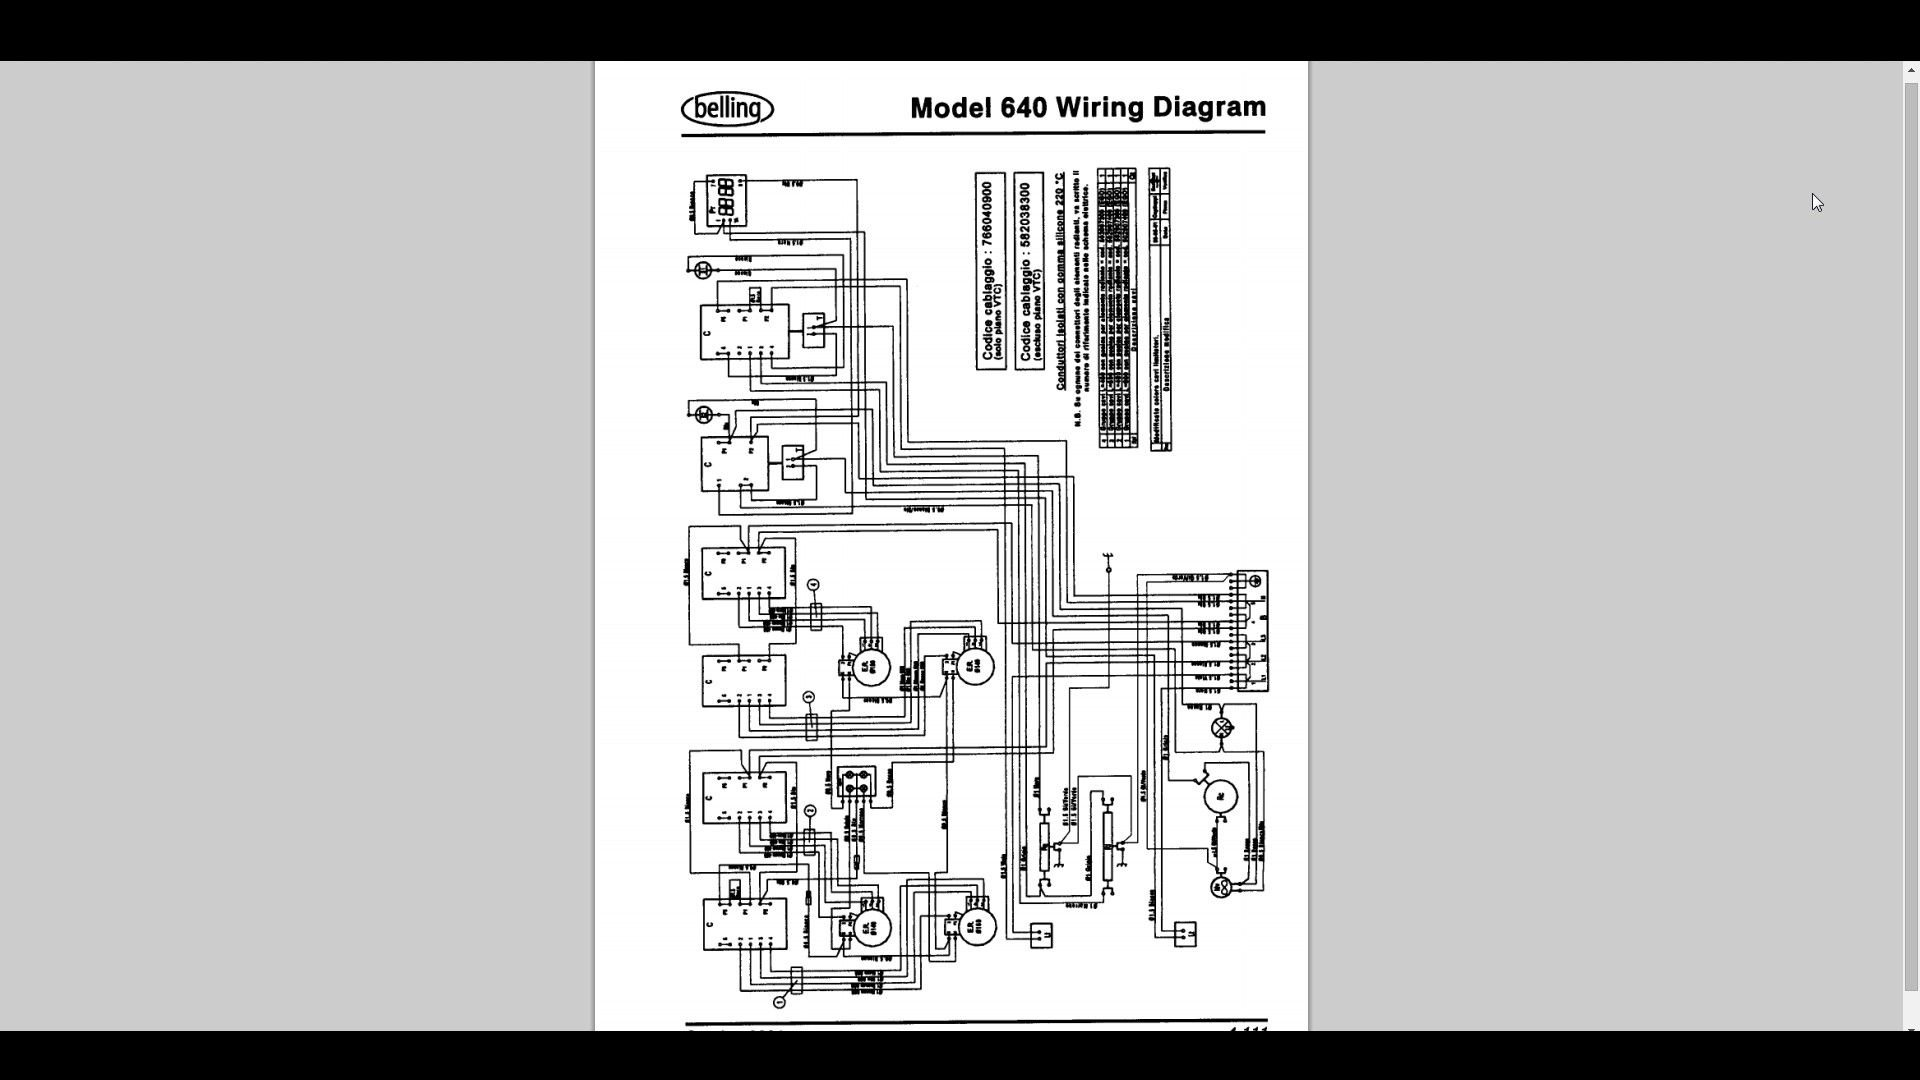 2014 07 25_160309_screenhunter_911_jul._25_10.02 i need a wiring diagram for a belling double oven selector switch oven selector switch wiring diagram at highcare.asia